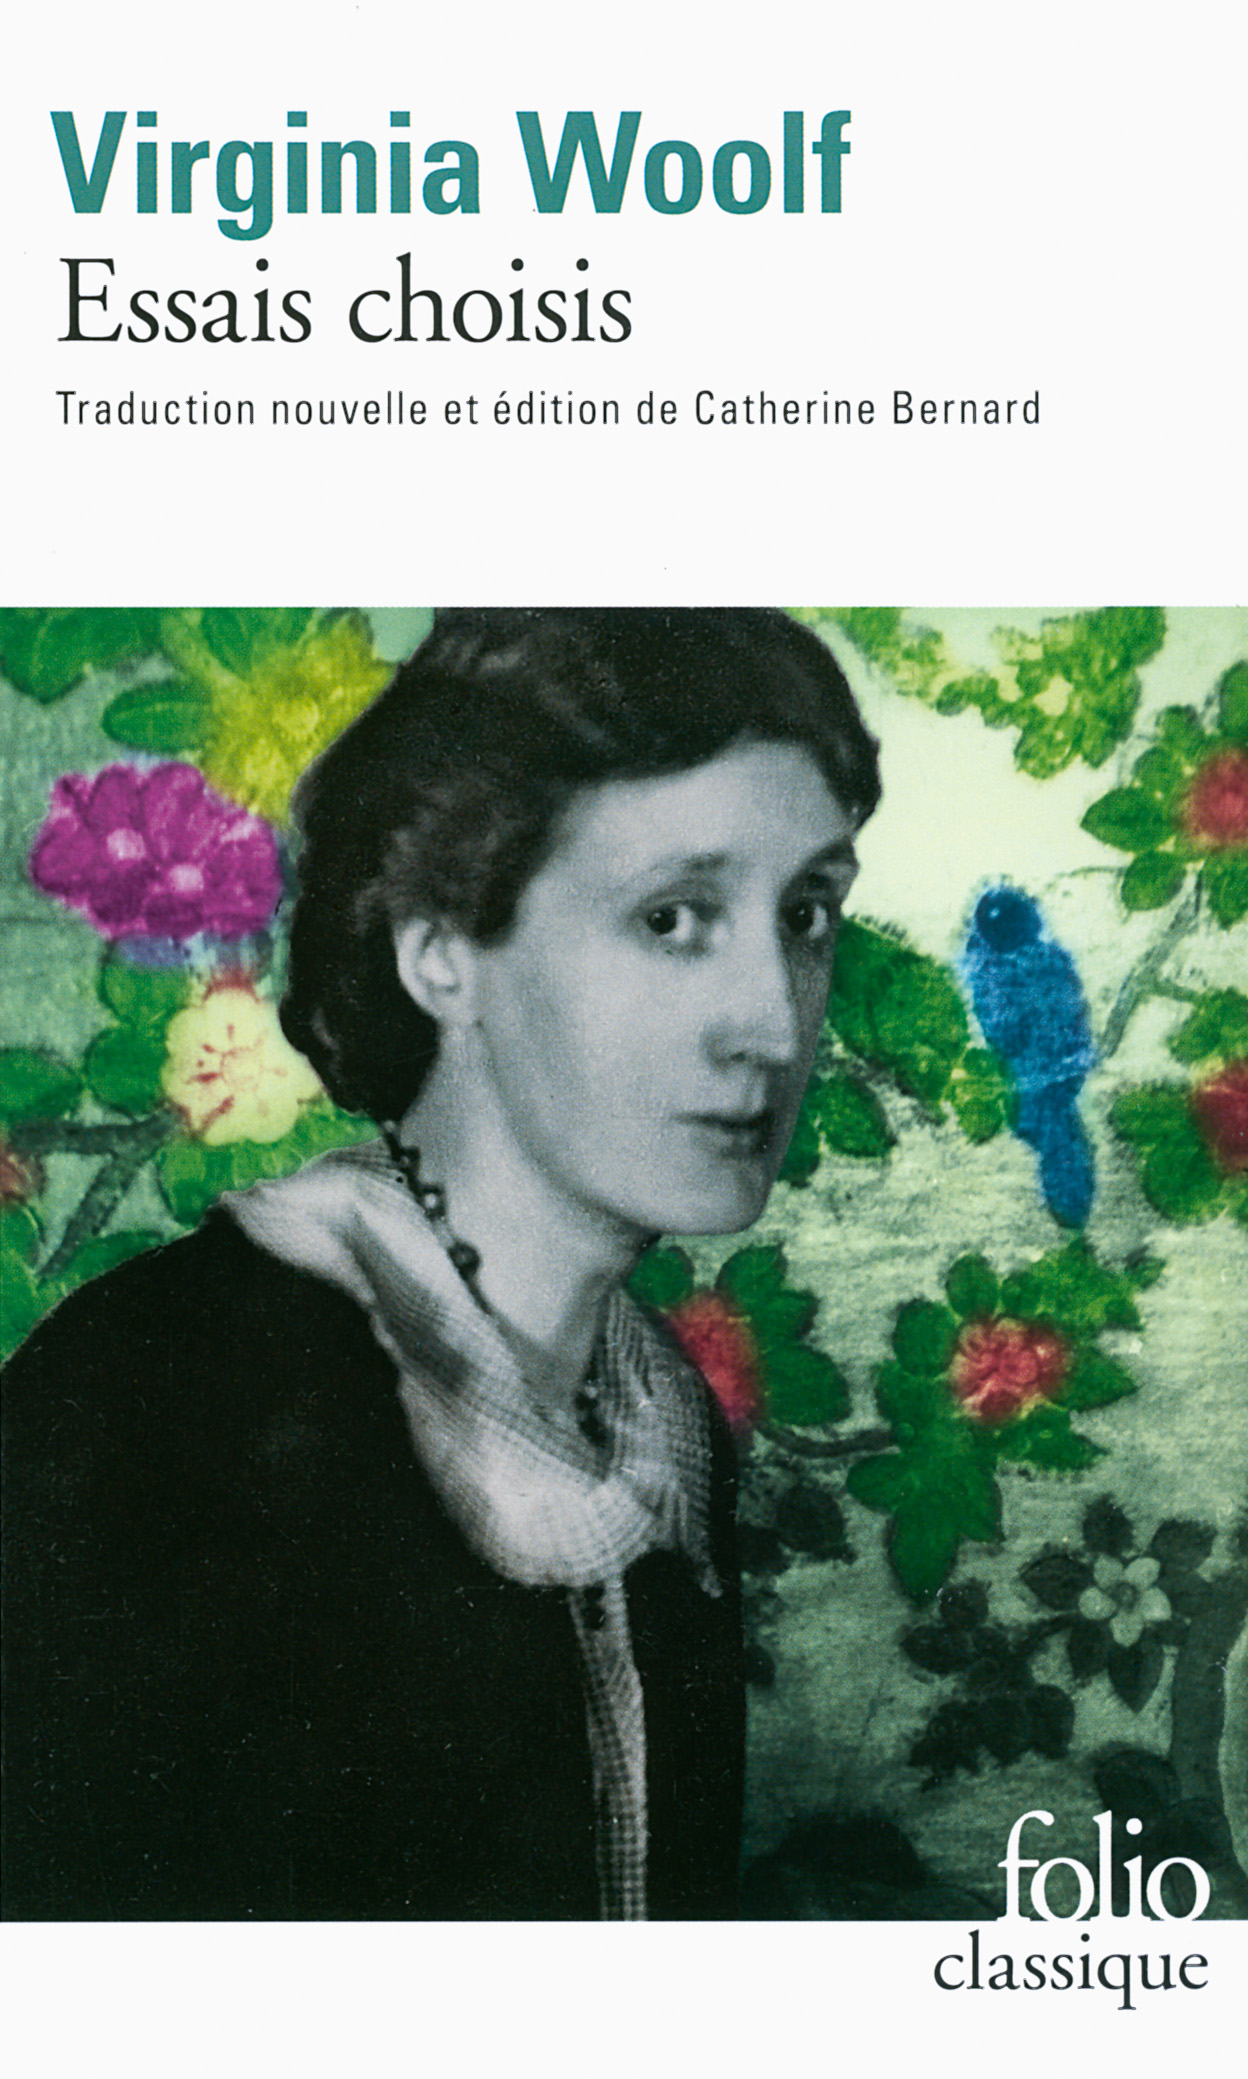 the essays of virginia woolf vol 3 Download and read essays of virginia woolf vol 4 1925 1928 essays of virginia woolf vol 4 1925 1928 inevitably, reading is one of the requirements to be undergone.